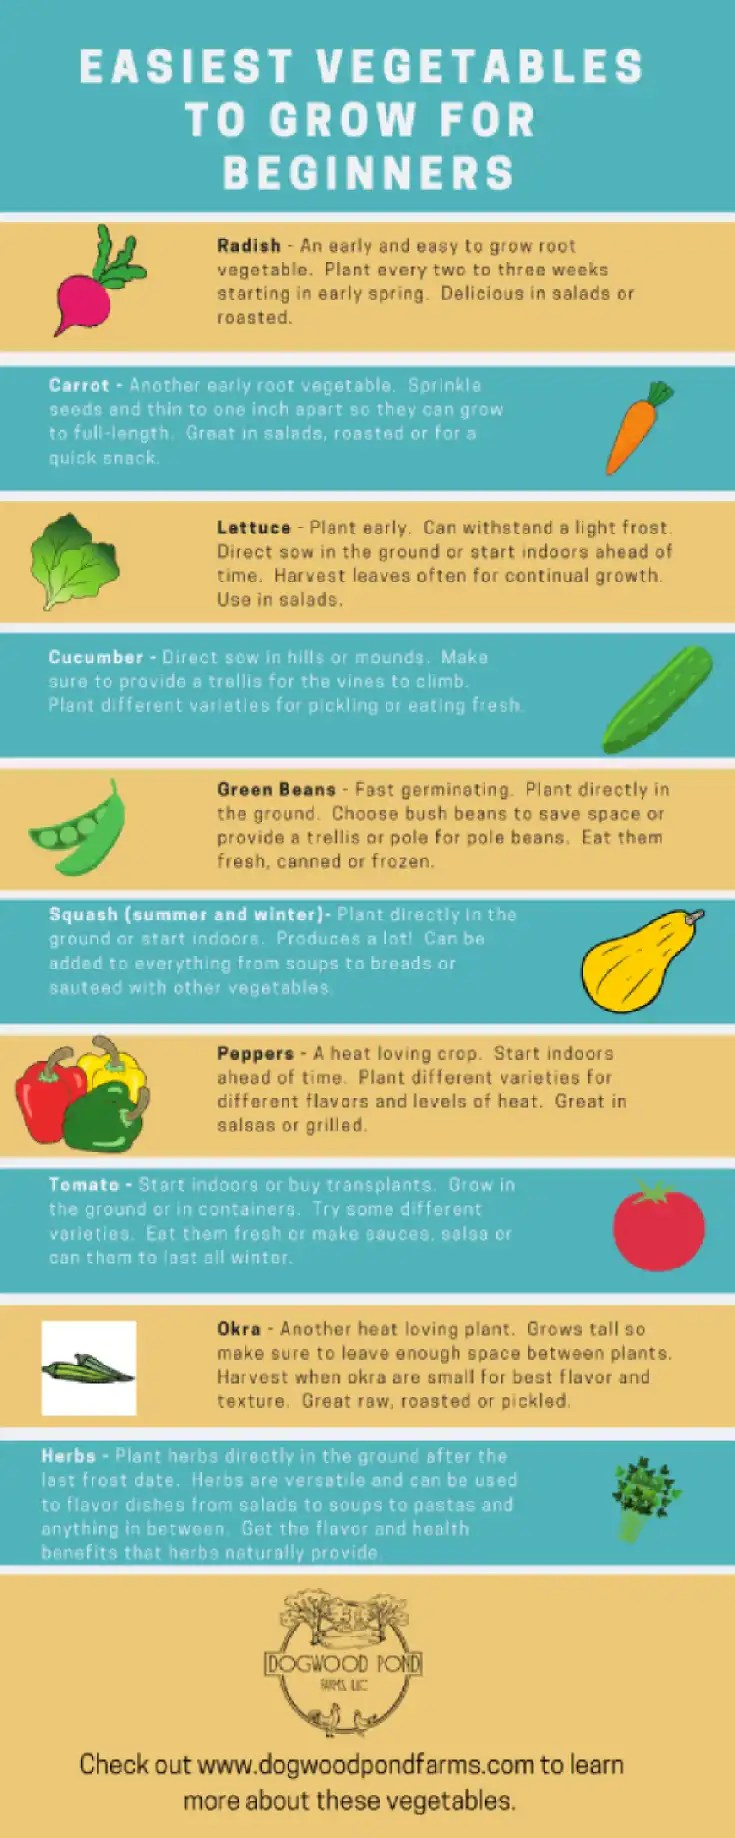 Try out these vegetables if you are a beginner